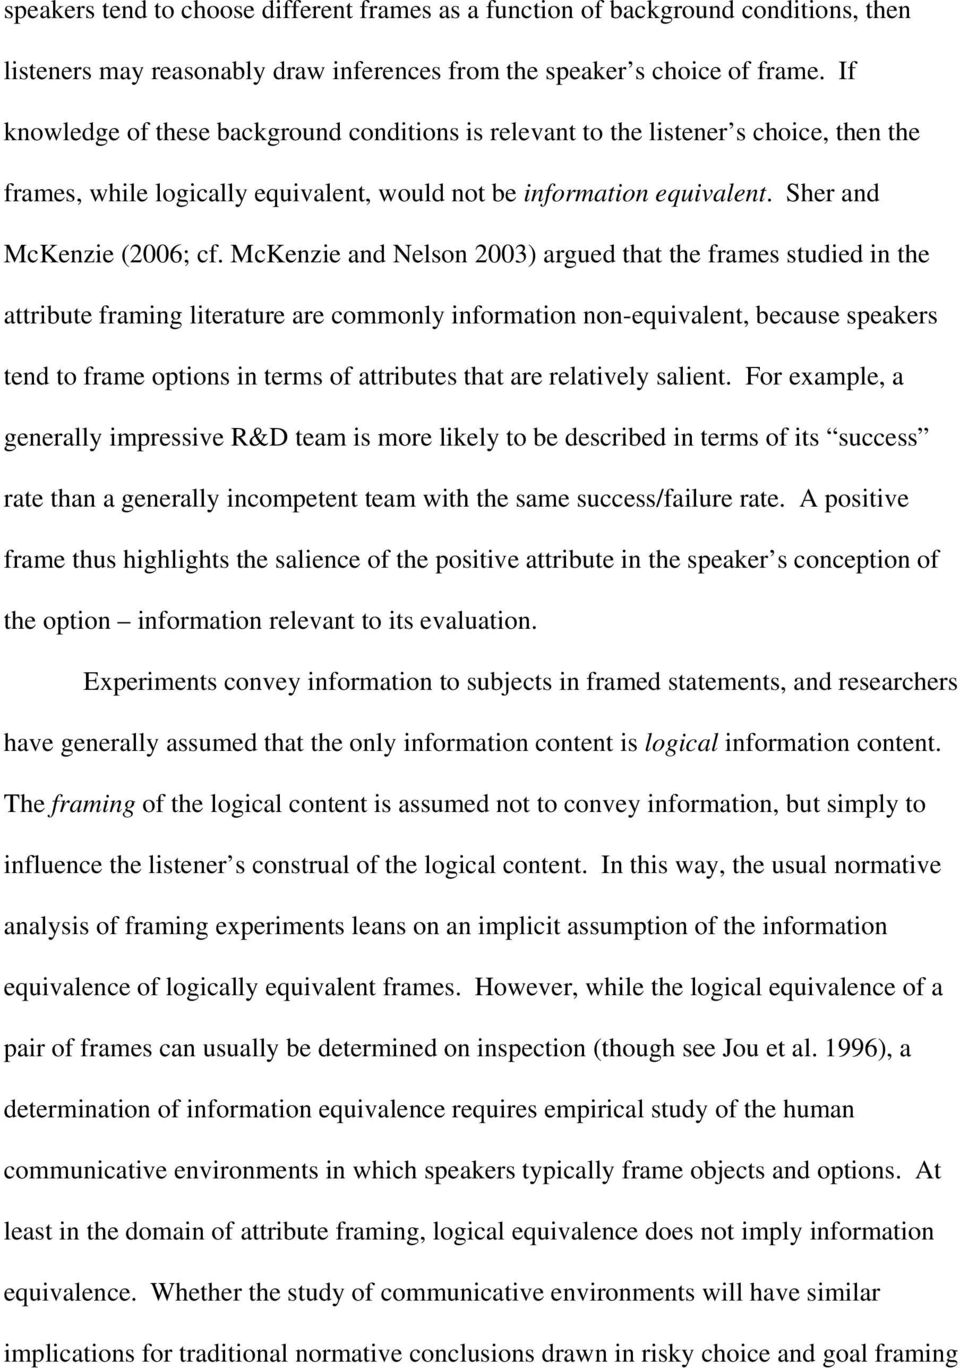 McKenzie and Nelson 2003) argued that the frames studied in the attribute framing literature are commonly information non-equivalent, because speakers tend to frame options in terms of attributes